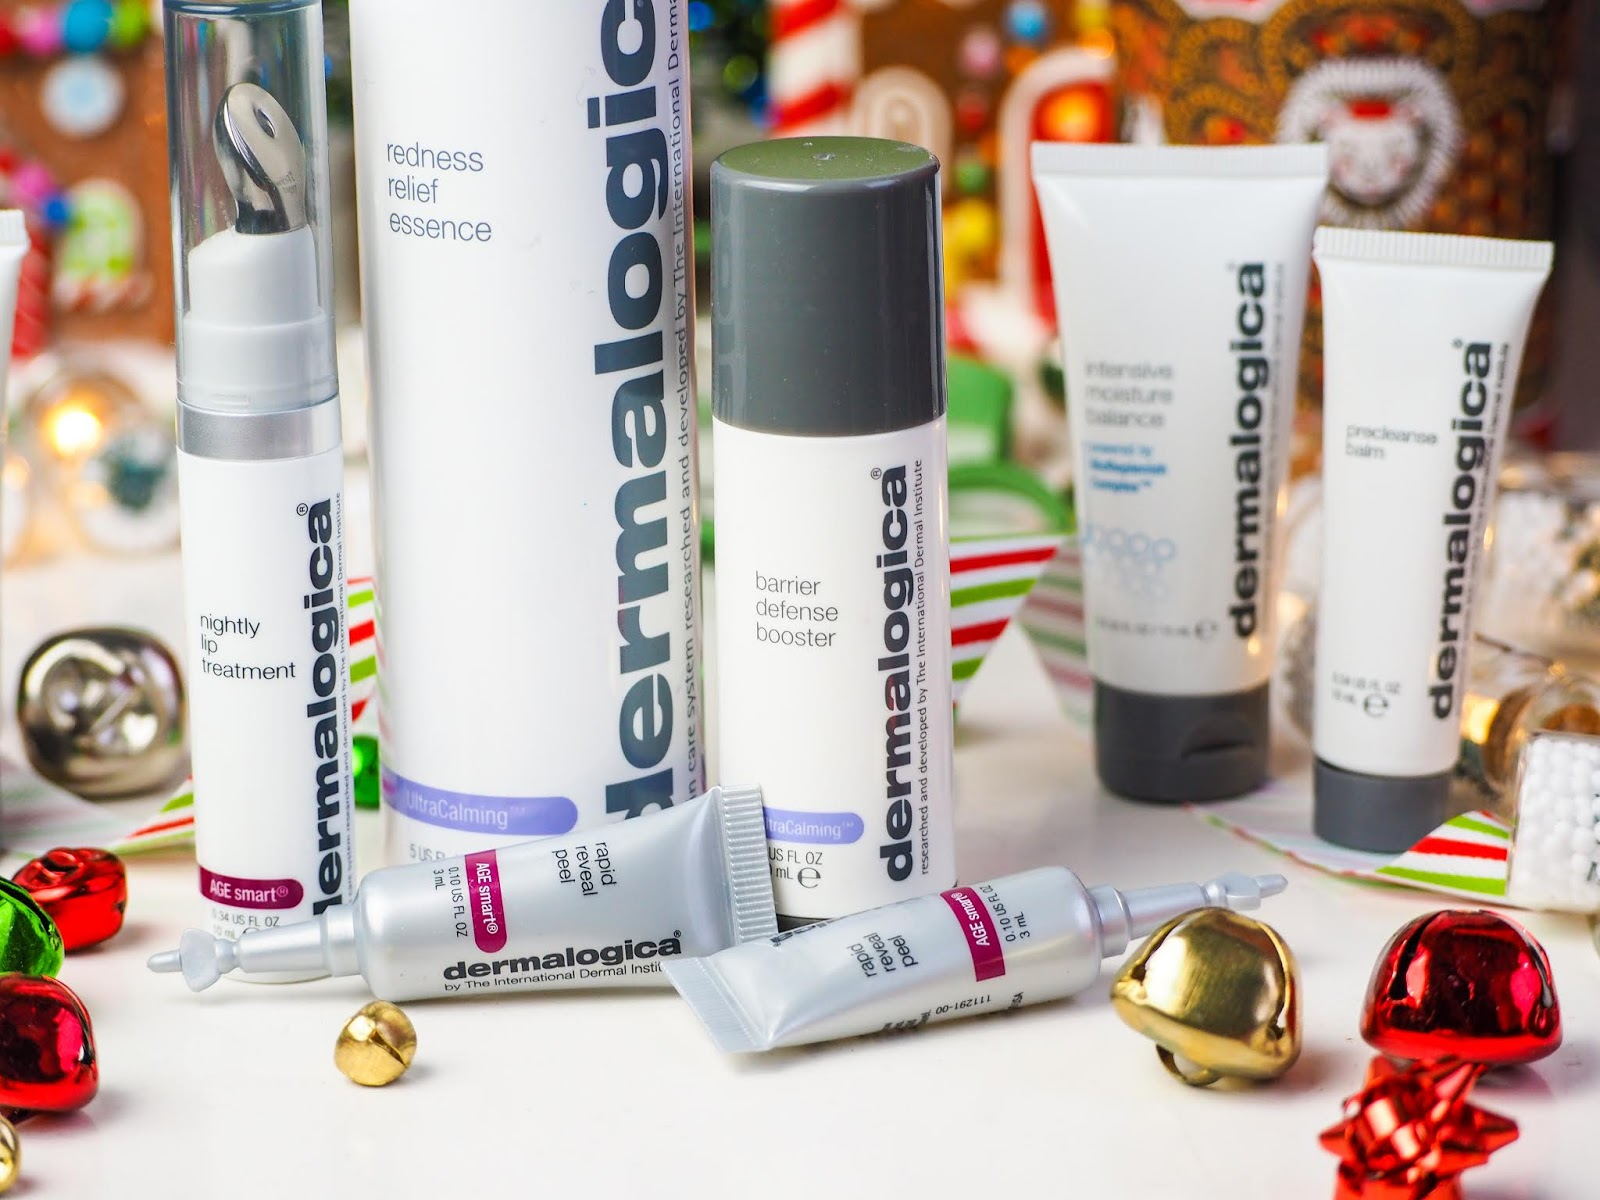 Christmas Gifting With Dermalogica*, Barrier Defense Booster*, Rapid Reveal Peel*, Nightly Lip Treatment*, Redness Relief Essence*, Precleanse Balm*, Intensive Moisture Cleanser*, Intensive Moisture Balance* Skin Smoothing Cream*, Daily Microfoliant*, Special Cleansing Gel* Review